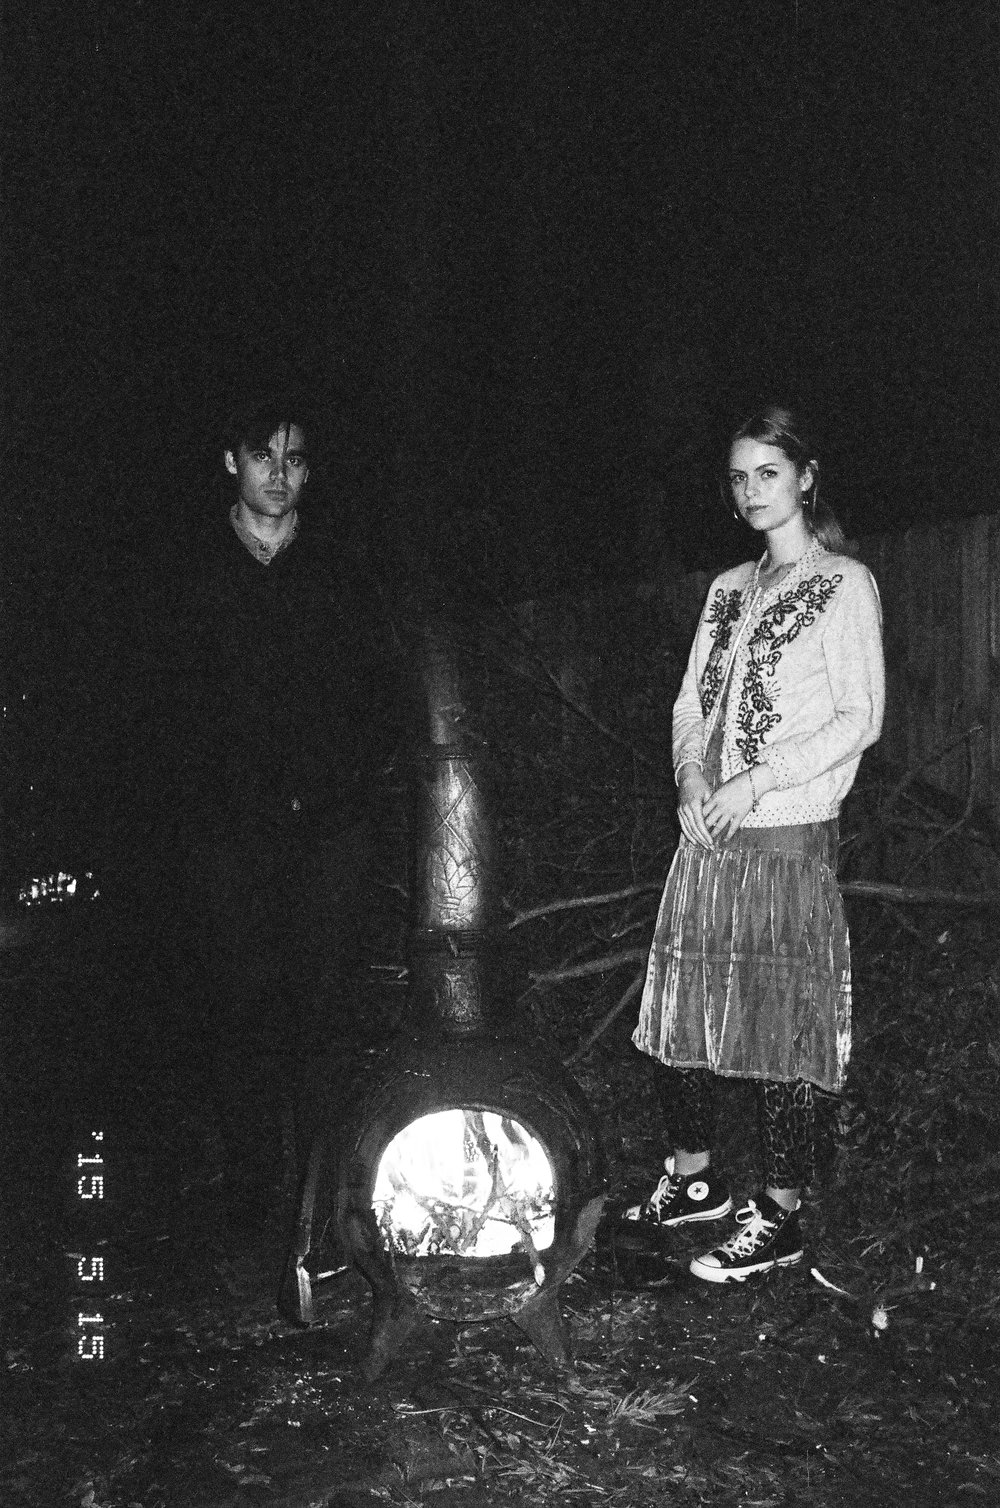 Harry Culy and Lucy Aitchison of Bad News Books (photo: Sam Stephenson)